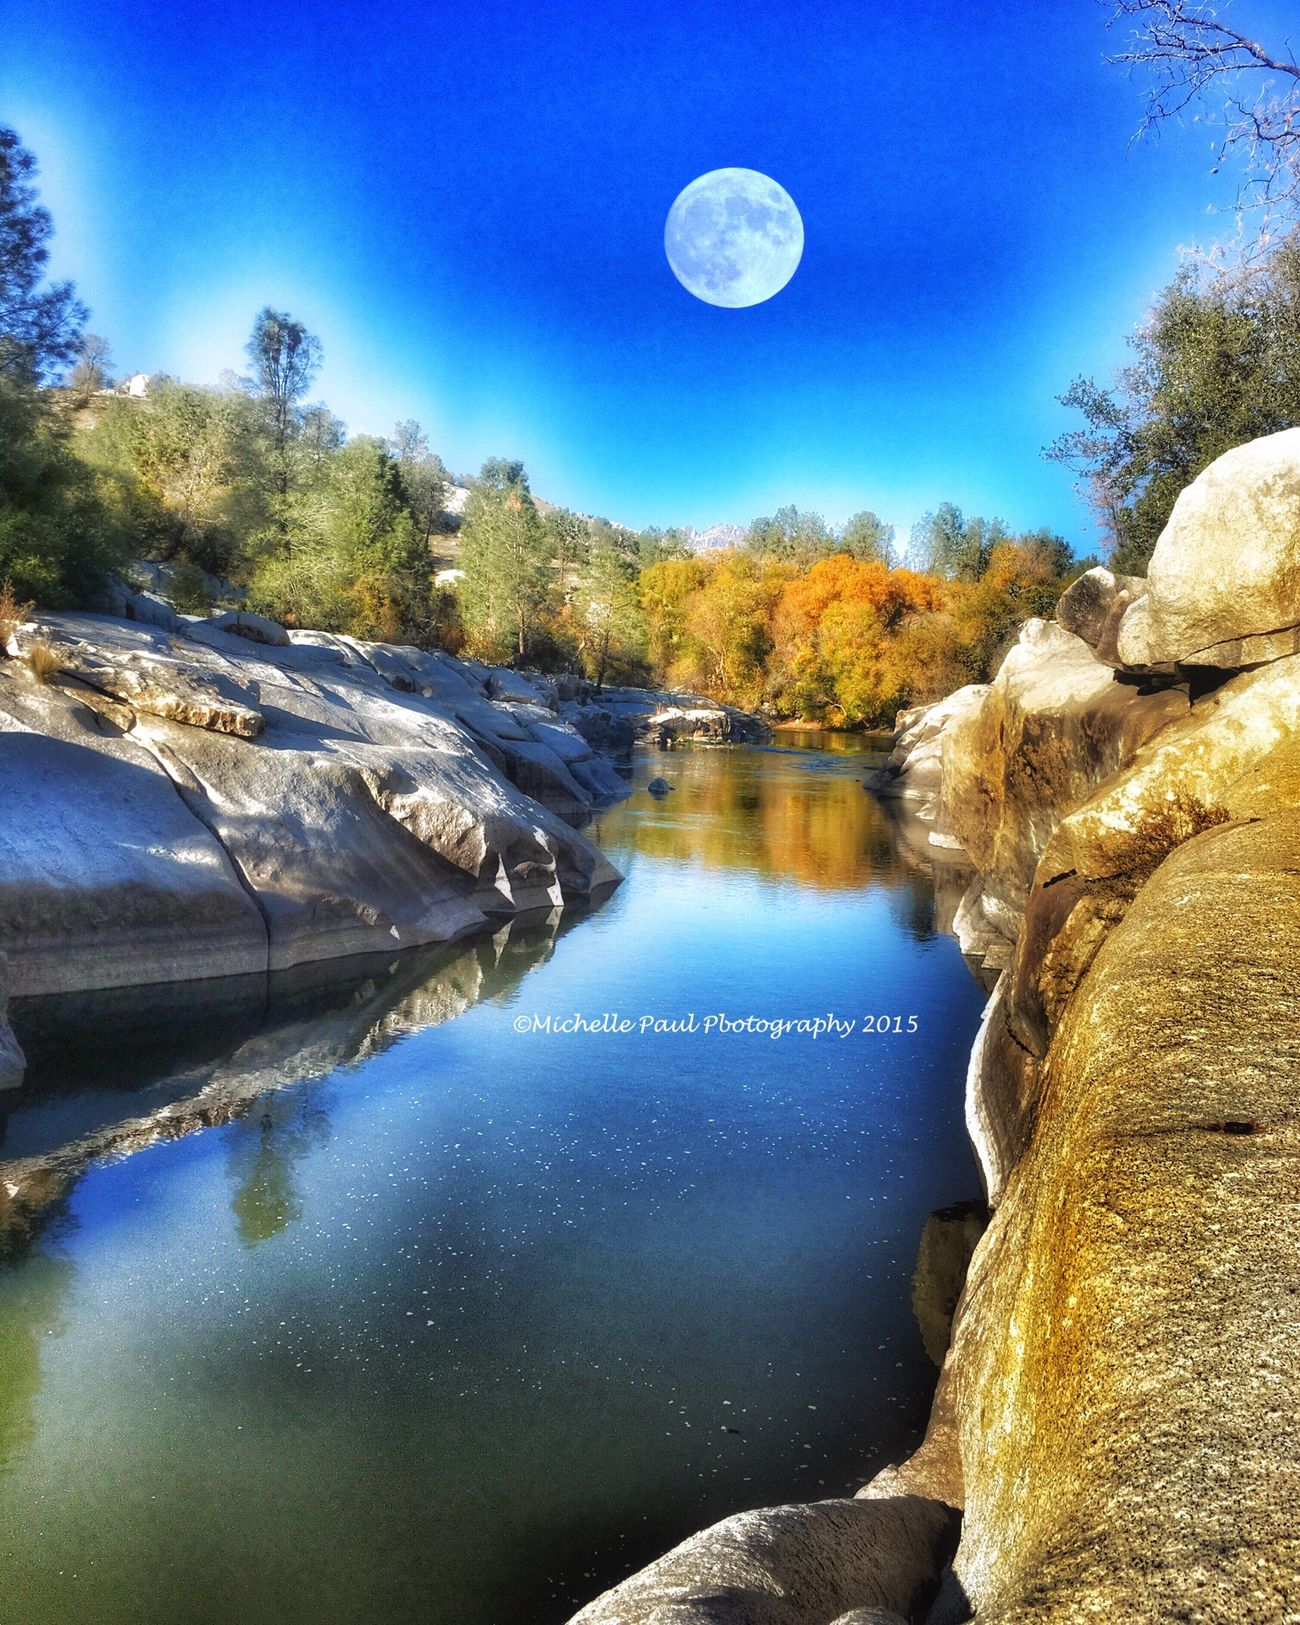 KernRiver Lakeisabella California Moon Phtography Naturephotography Iphonephotography Iphone6s River Beautifulbutdangerous Photographyisawesome PhotographyIsMyPassion Passionforphotography AmatuerPhotographer MichellePaulPhotography Photographer Photooftheday Moonphotography NatureAtItsBest